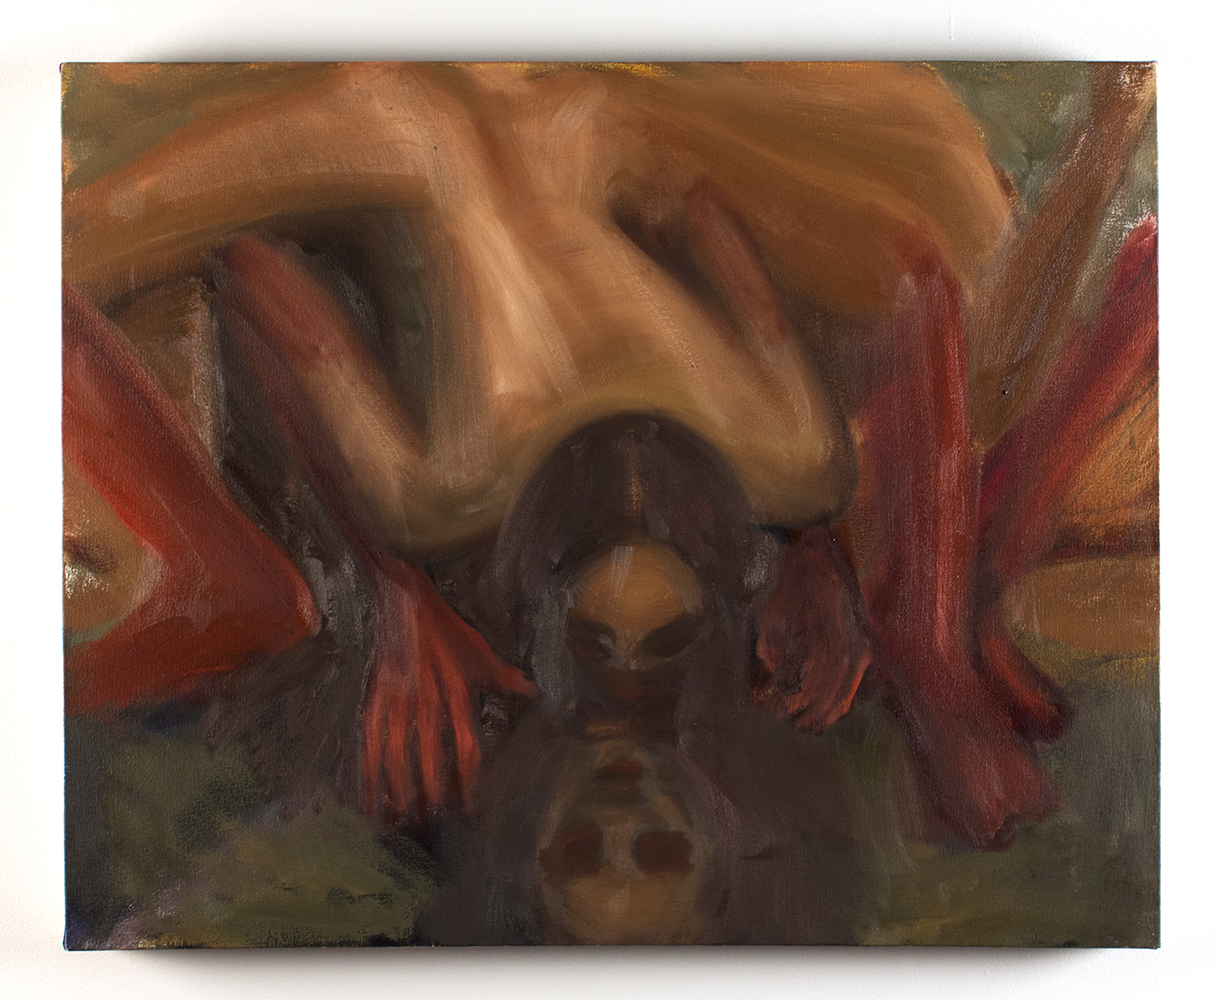 Digging_24x30in_oiloncanvas.jpg